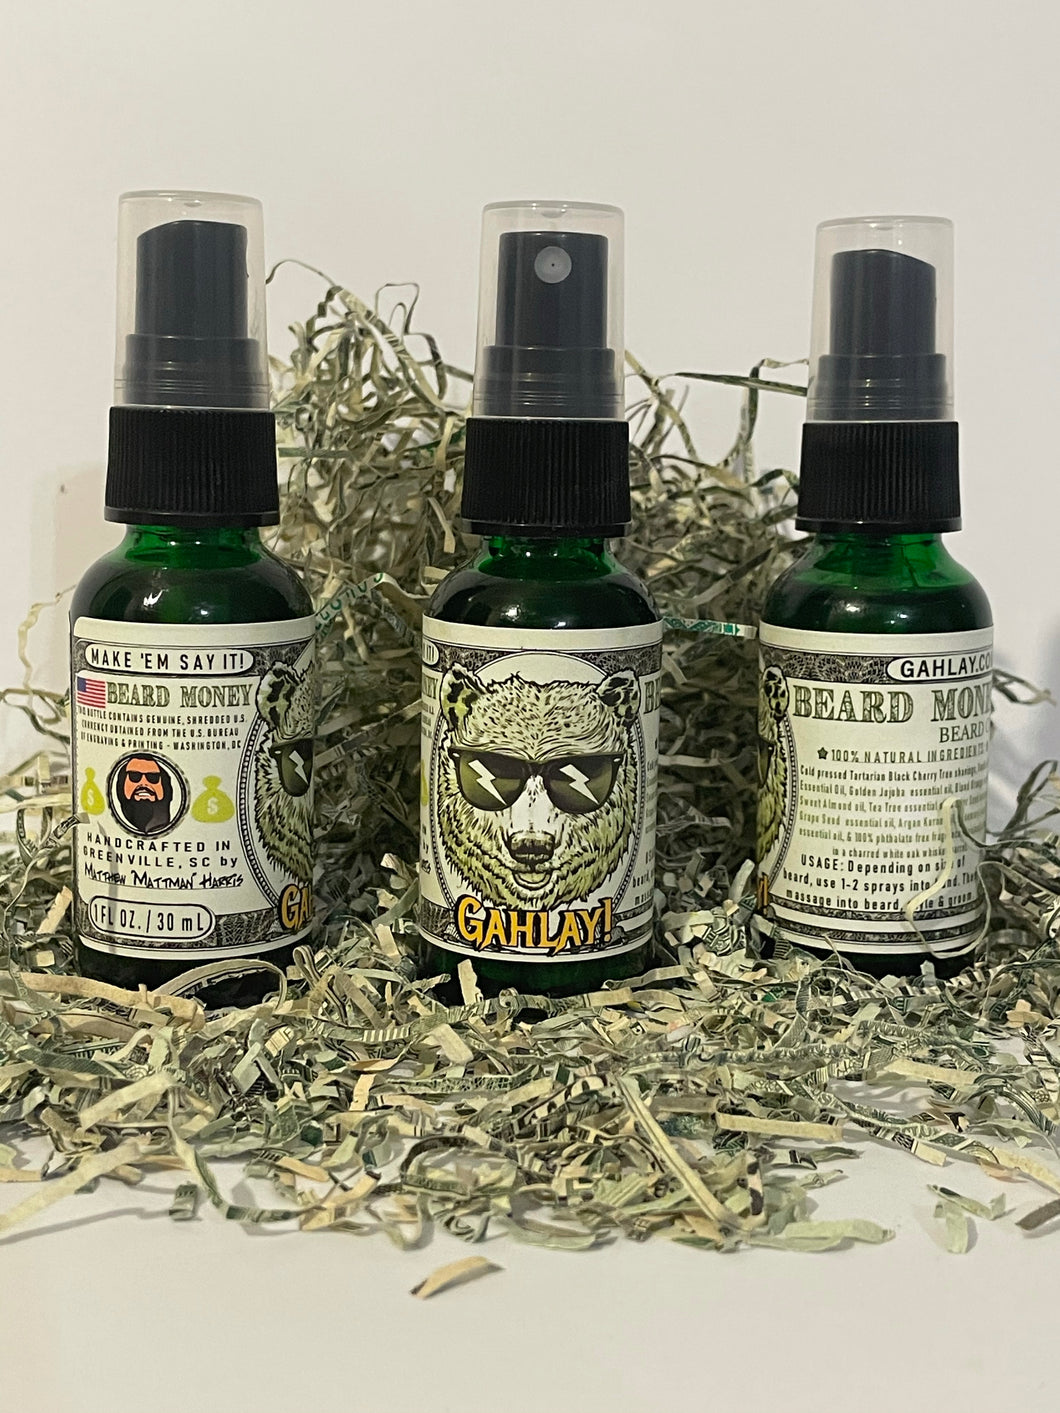 Mattman beard oil beard money GAHLAY!